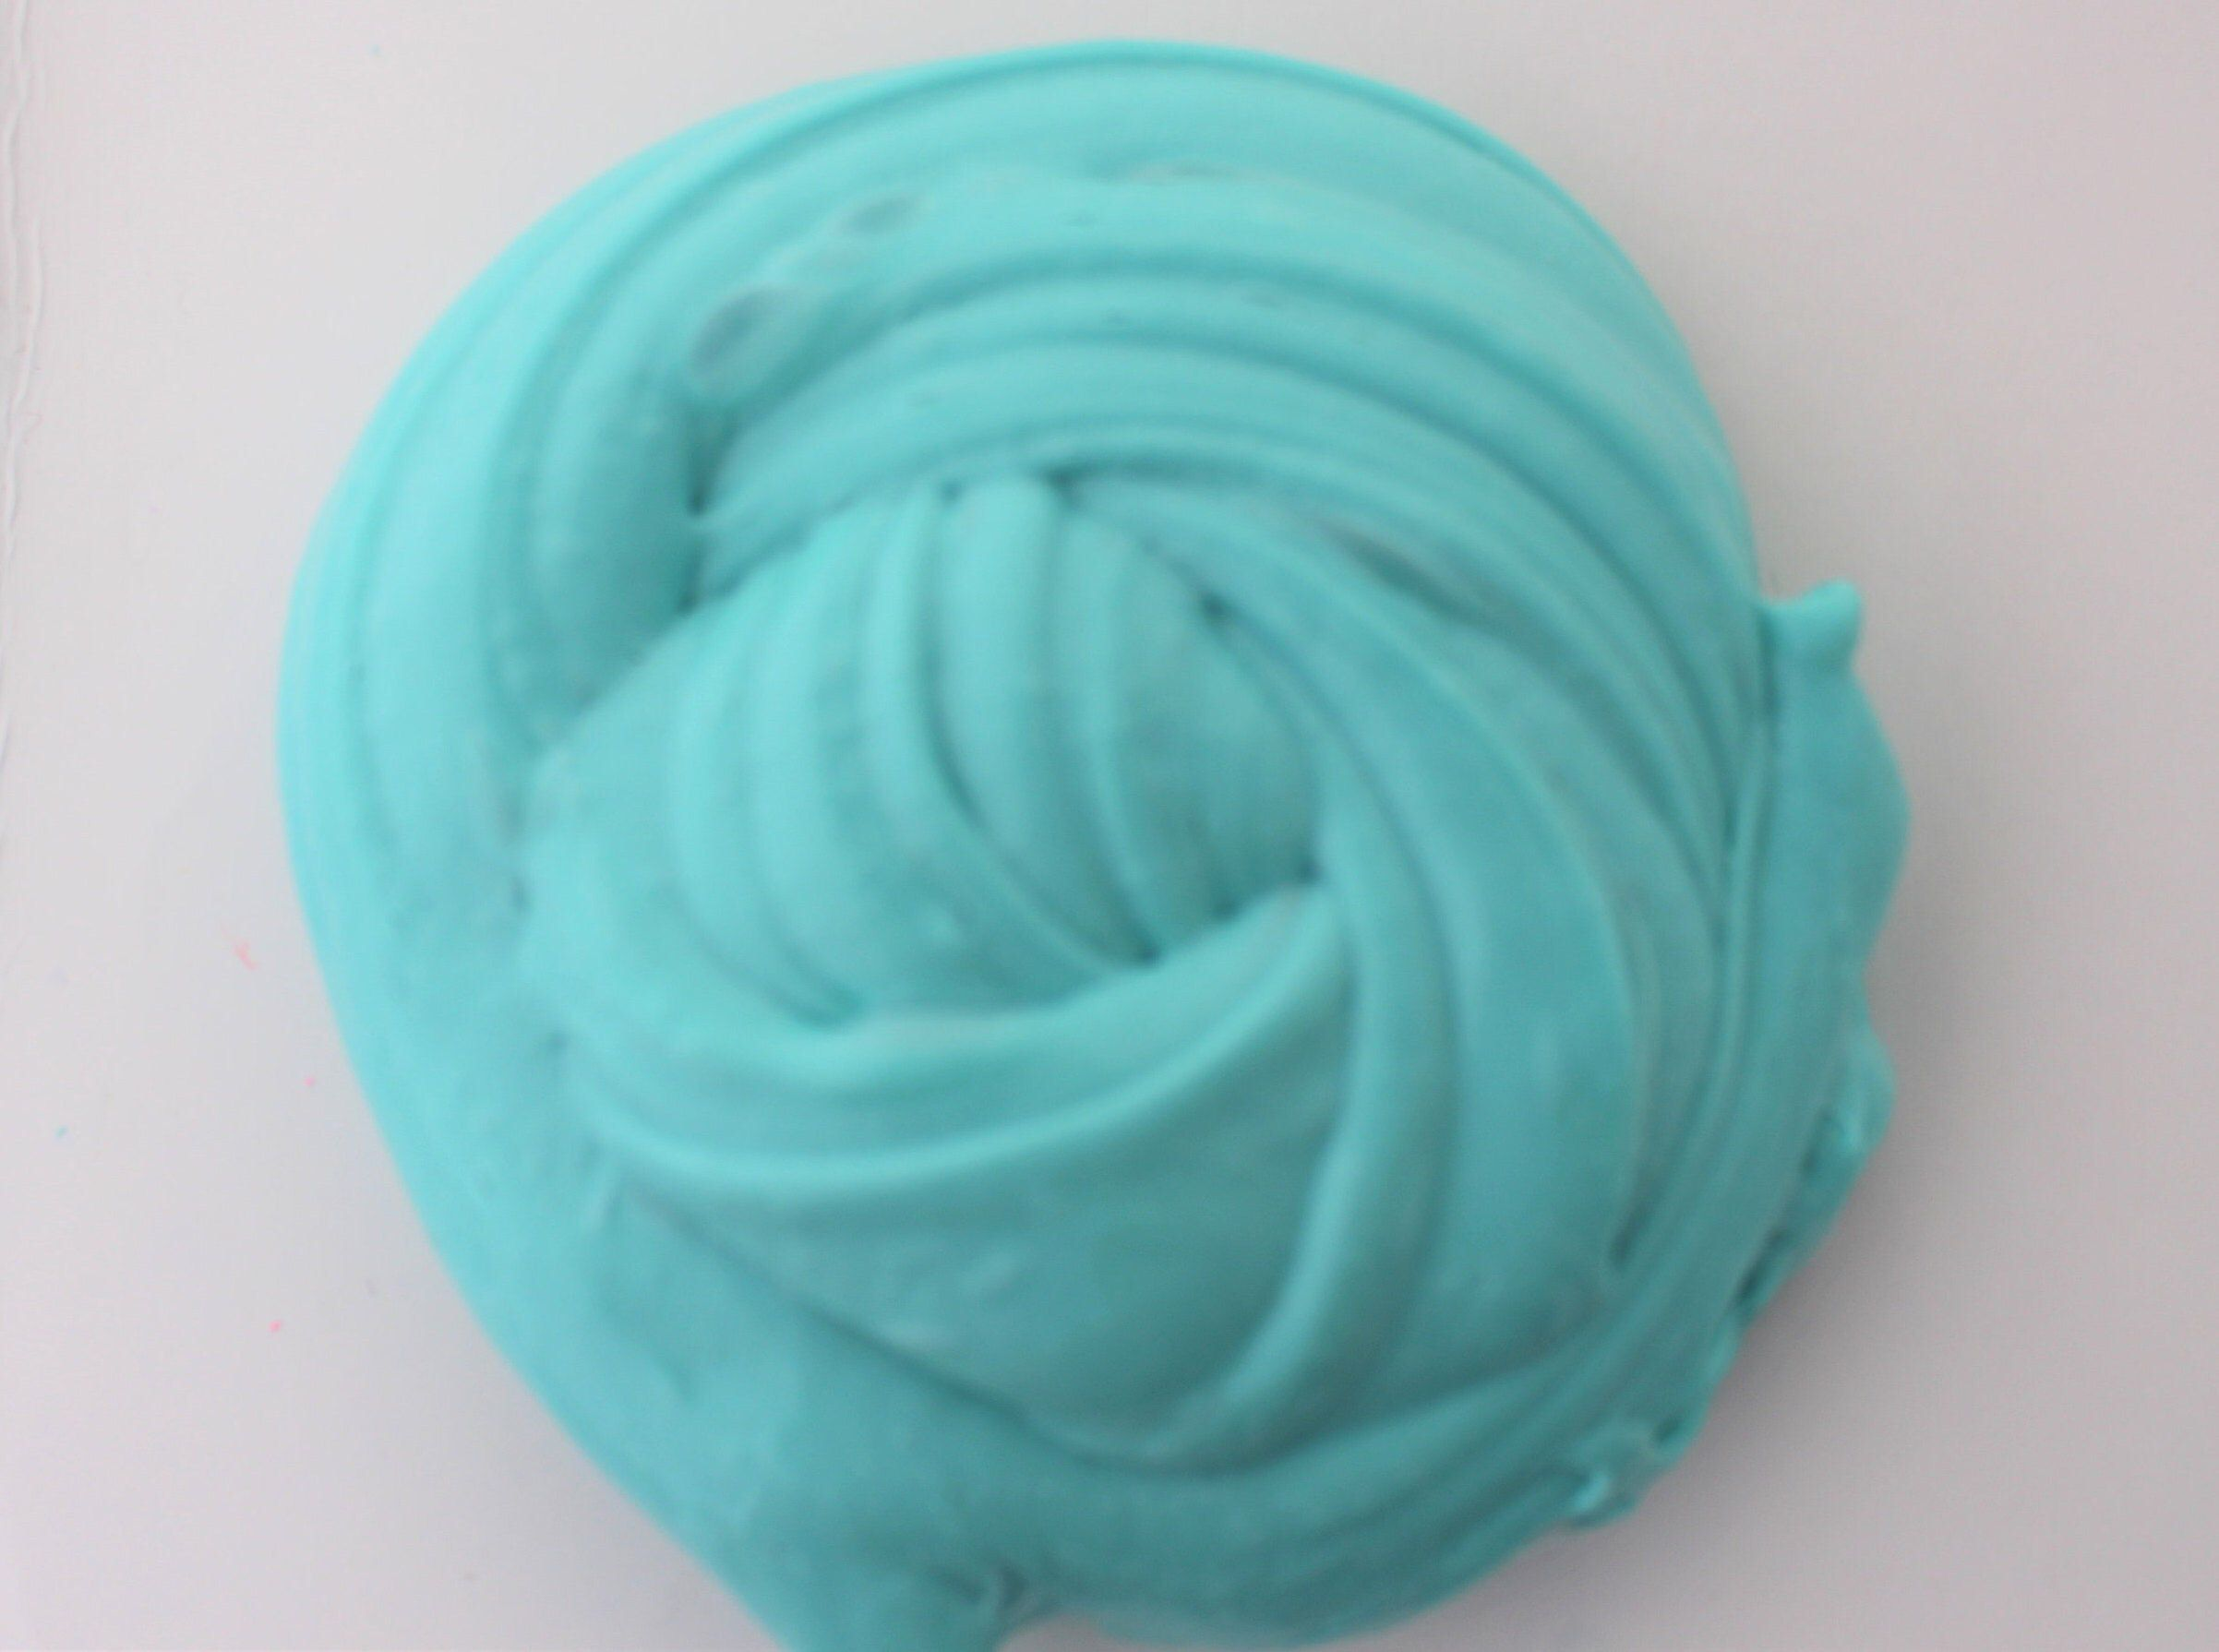 Turquoise Slime Butter Clay Fluffy Putty 8oz uk Seller Slime activator